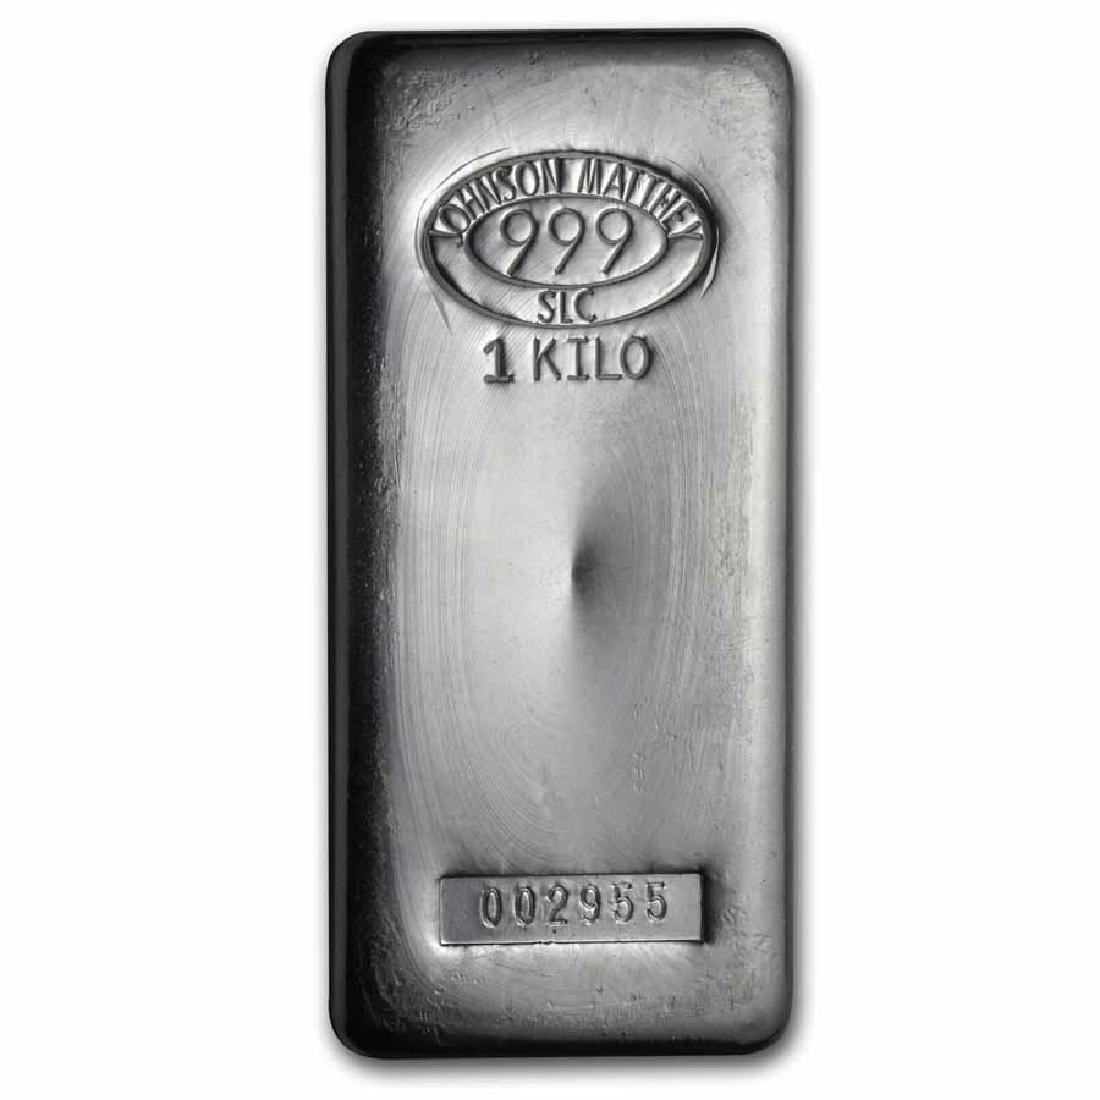 Johnson Matthey 1 Kilo Silver Bar (32.15 oz)